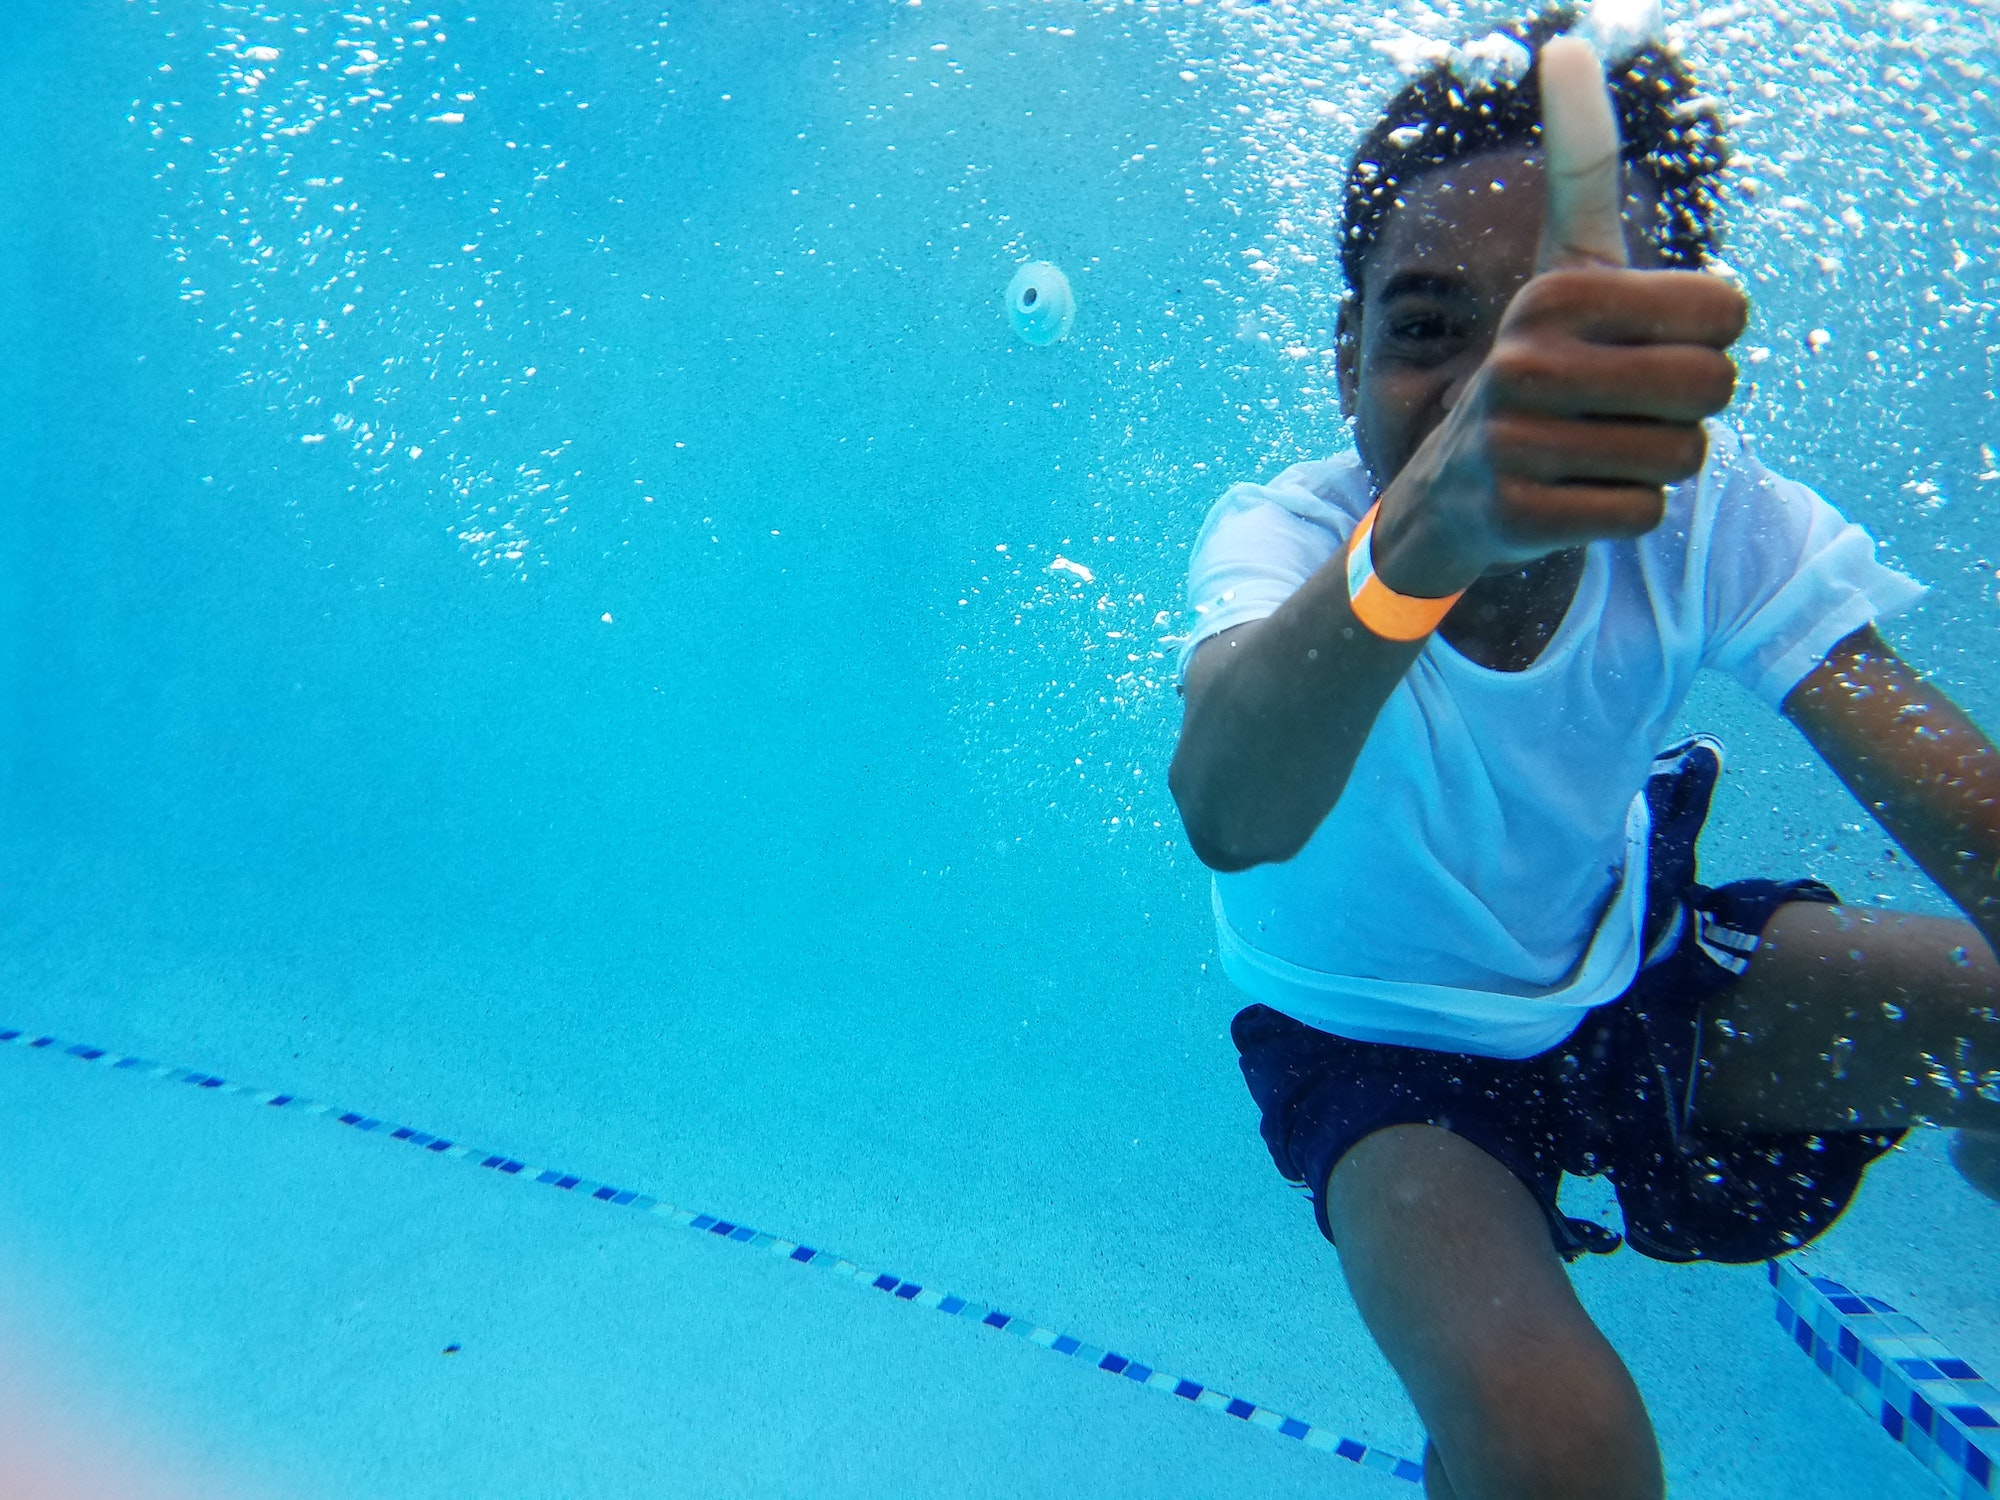 Child-Proofing Your Swimming Pool